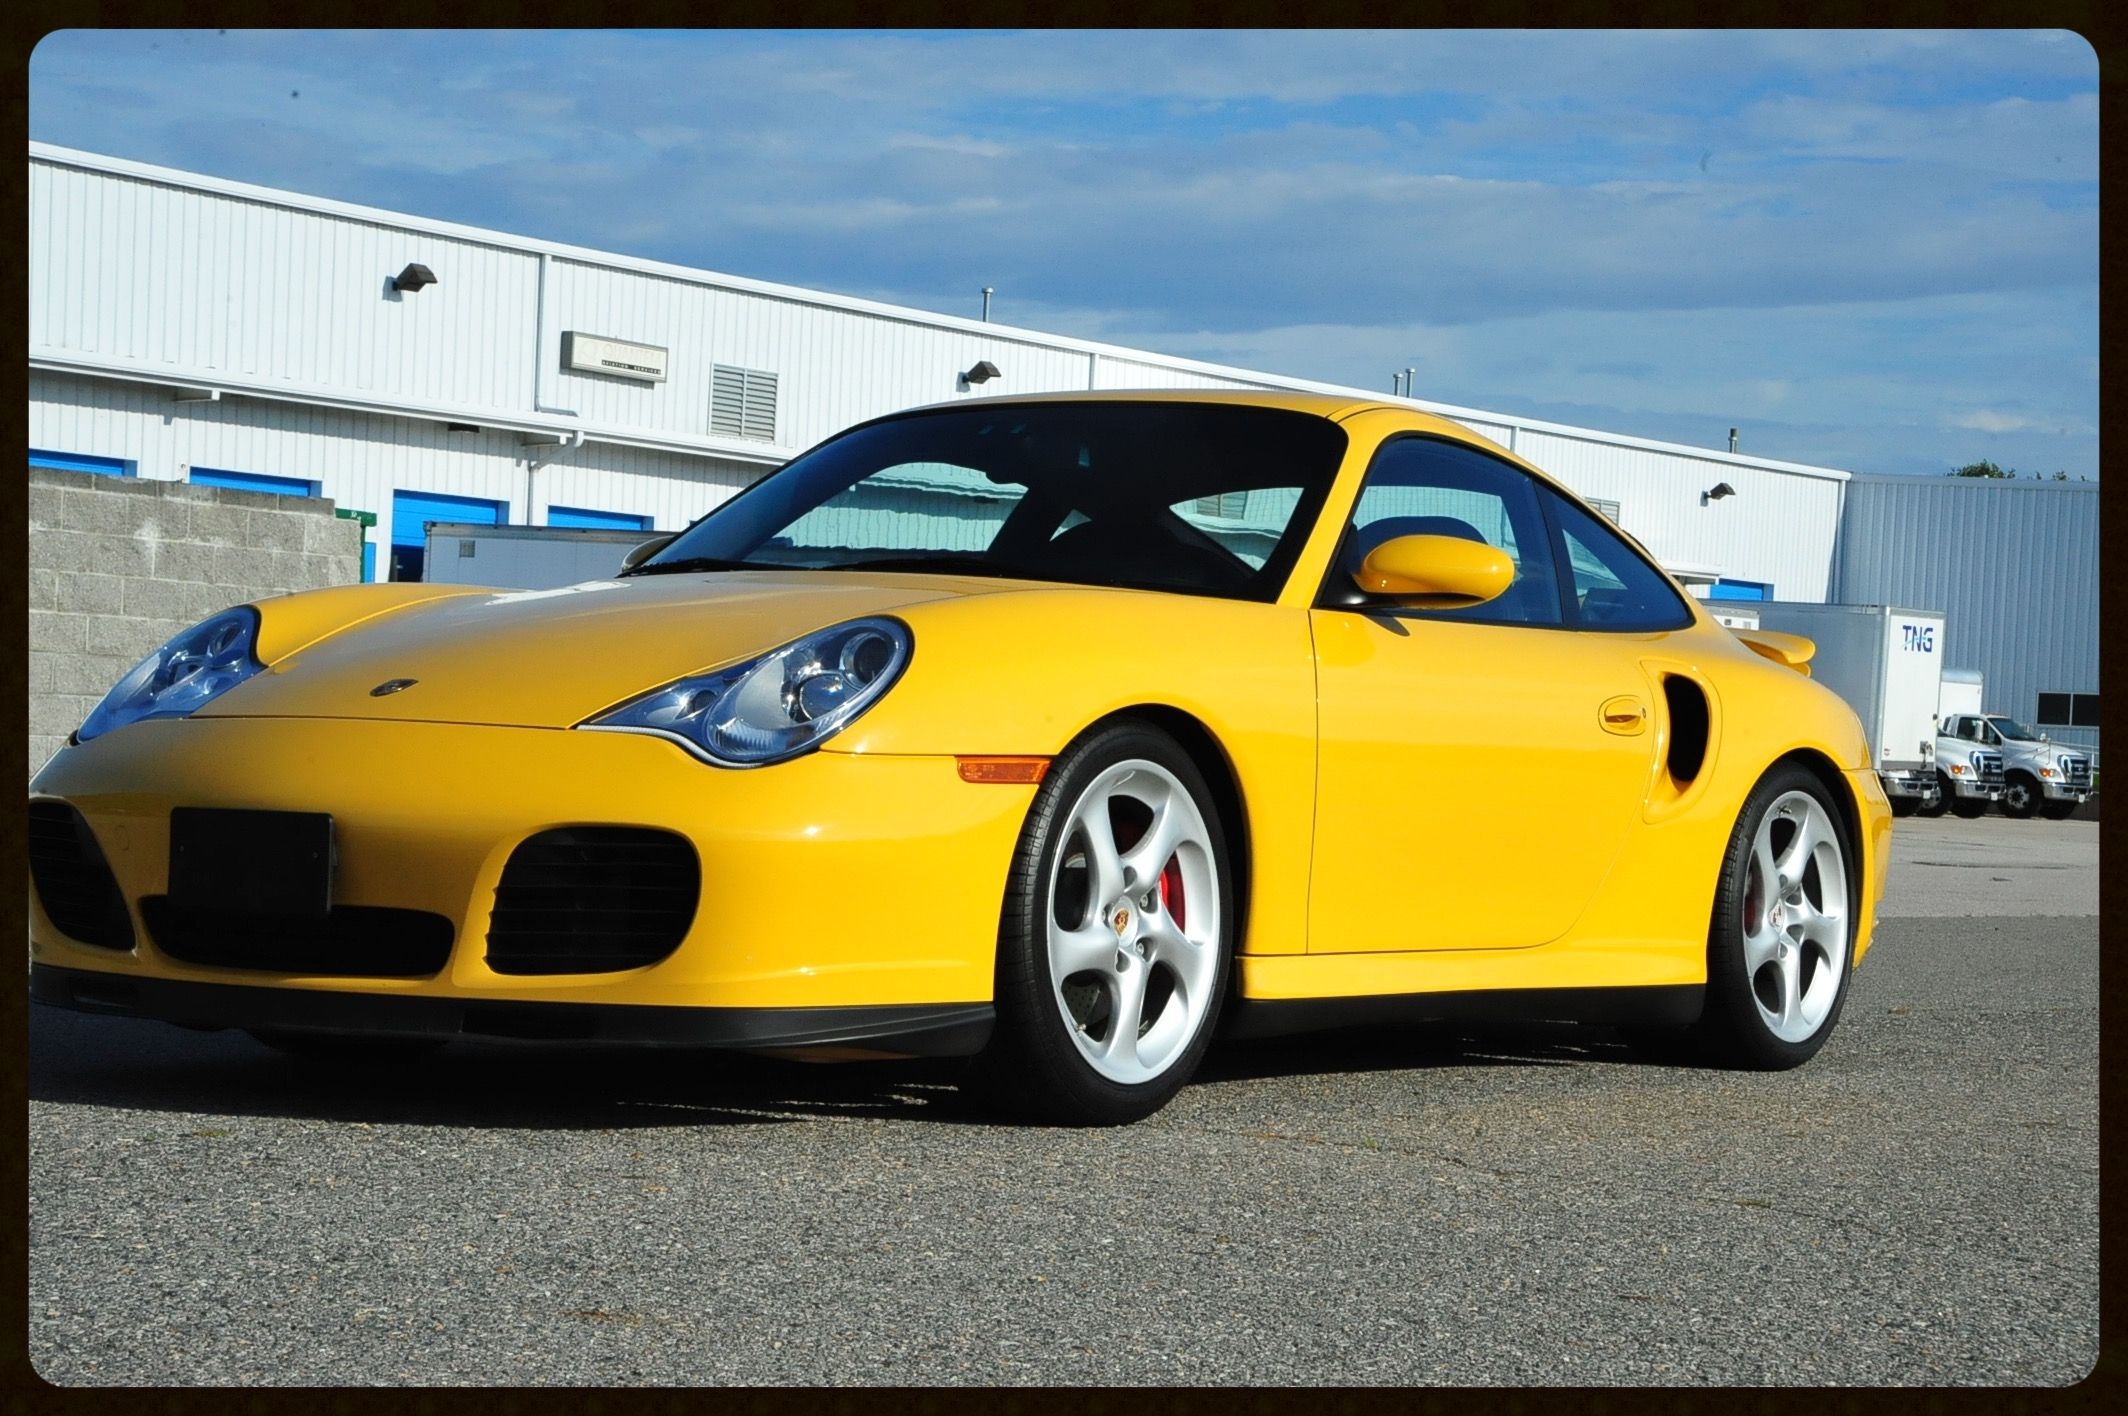 911 Turbo...Only 29K Miles...Fully Serviced...TONS of Performance Upgrades...VERY FAST....Click to View Photos